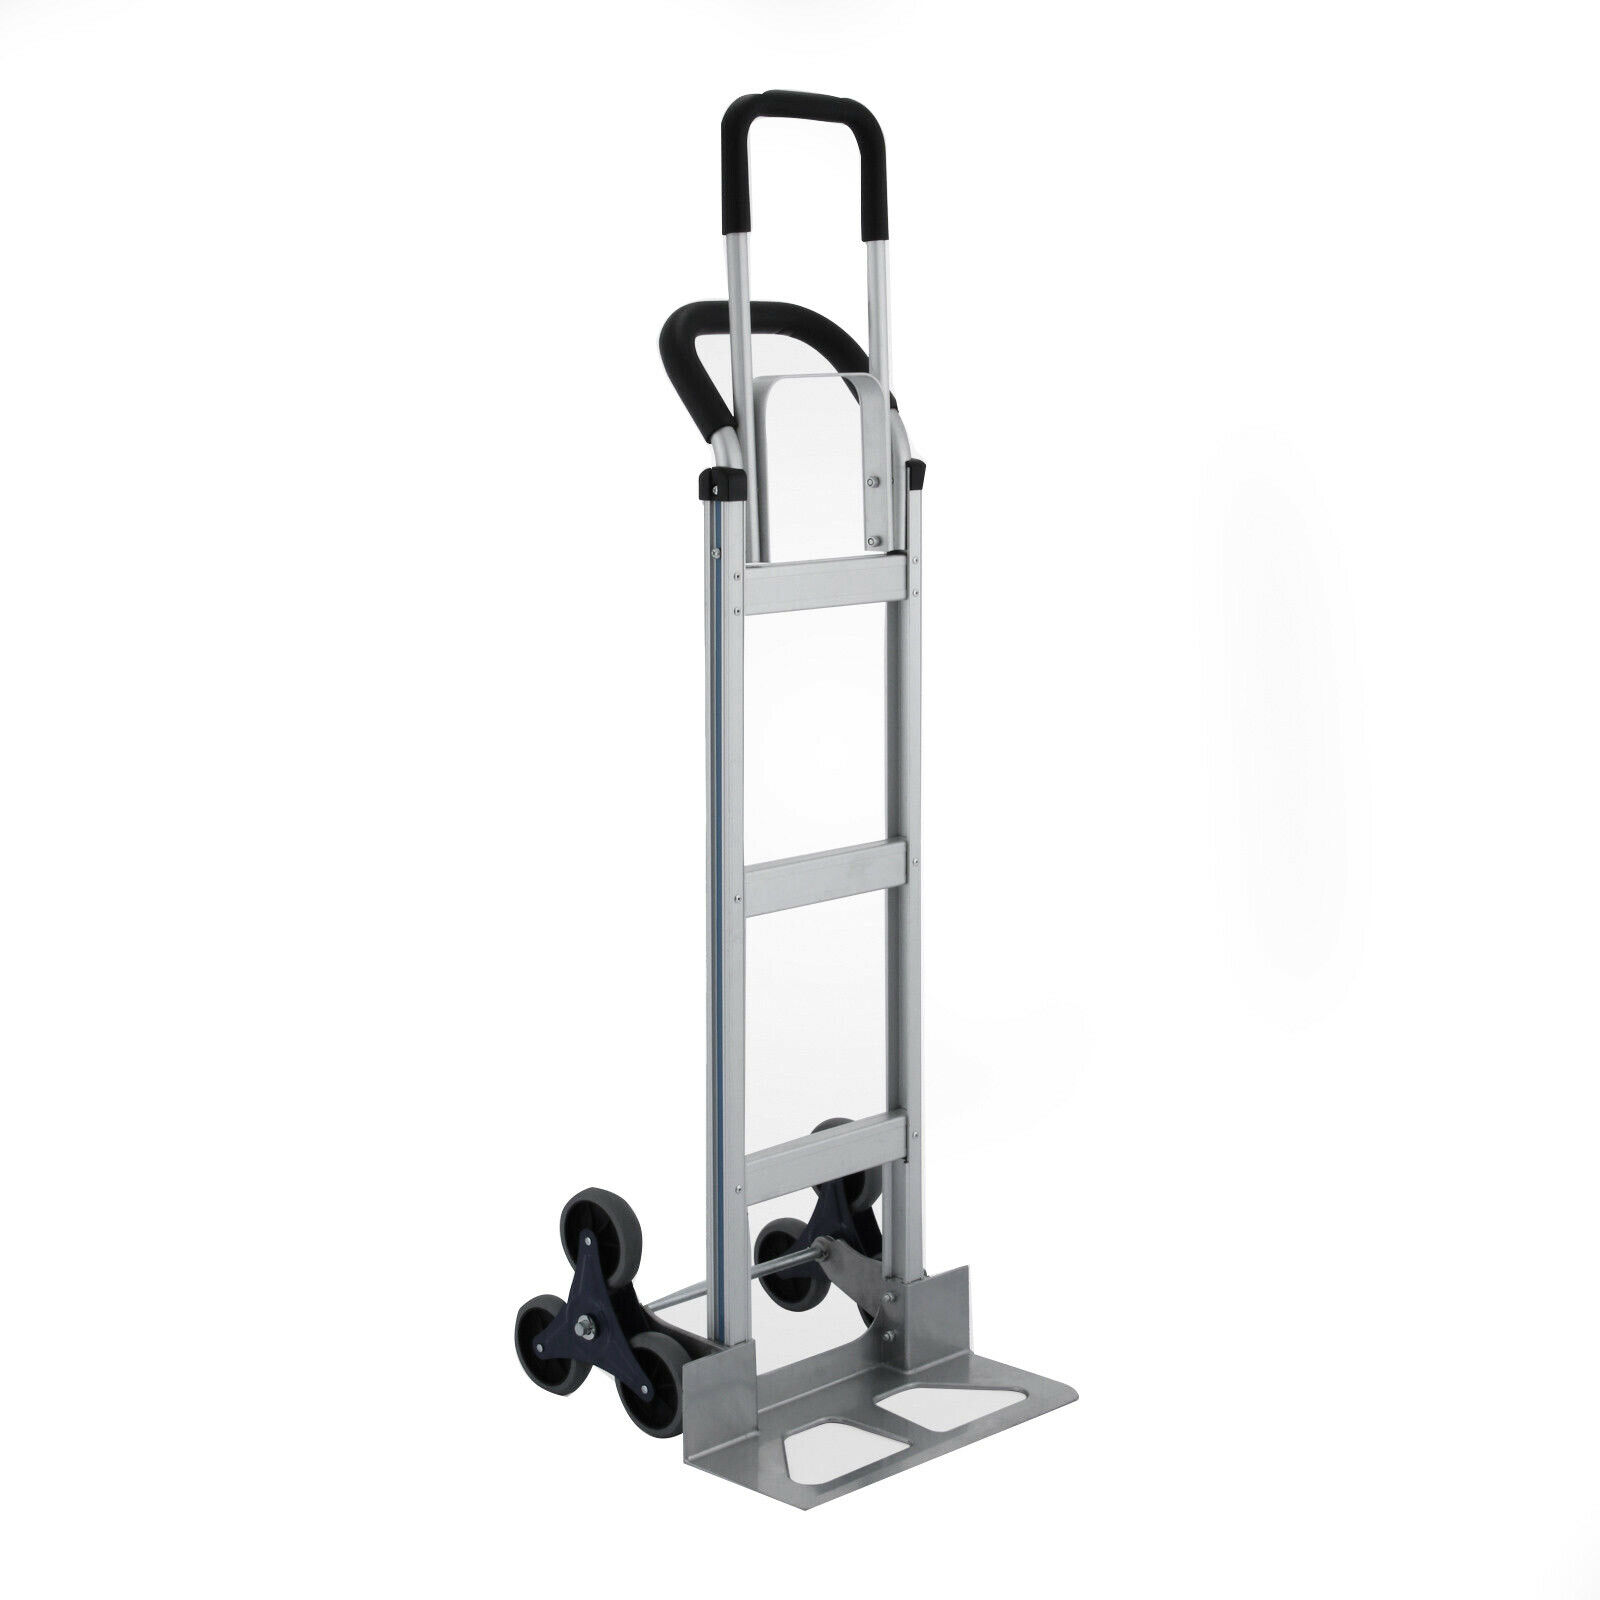 Stair Climbing Aluminum Hand Truck Dolly 330lbs Climbing Capacity 20Lx 18Wx 60H 98738940